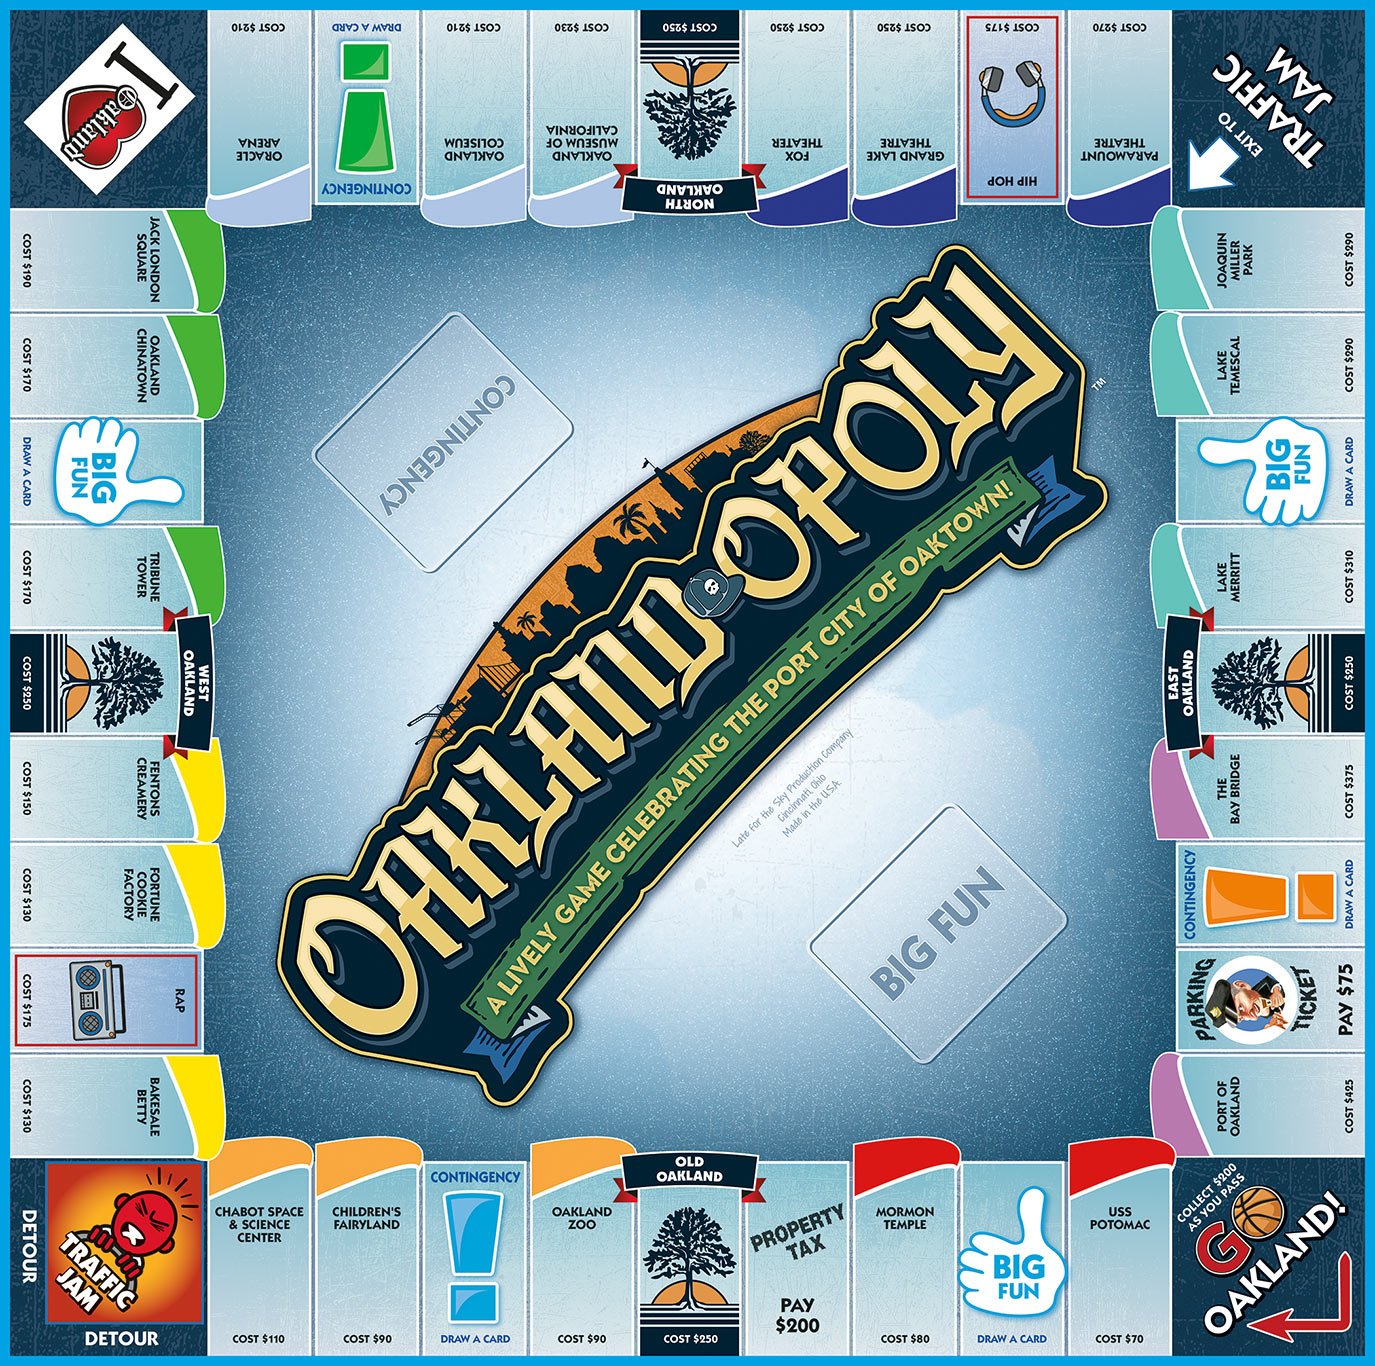 OAKLAND-OPOLY Board Game